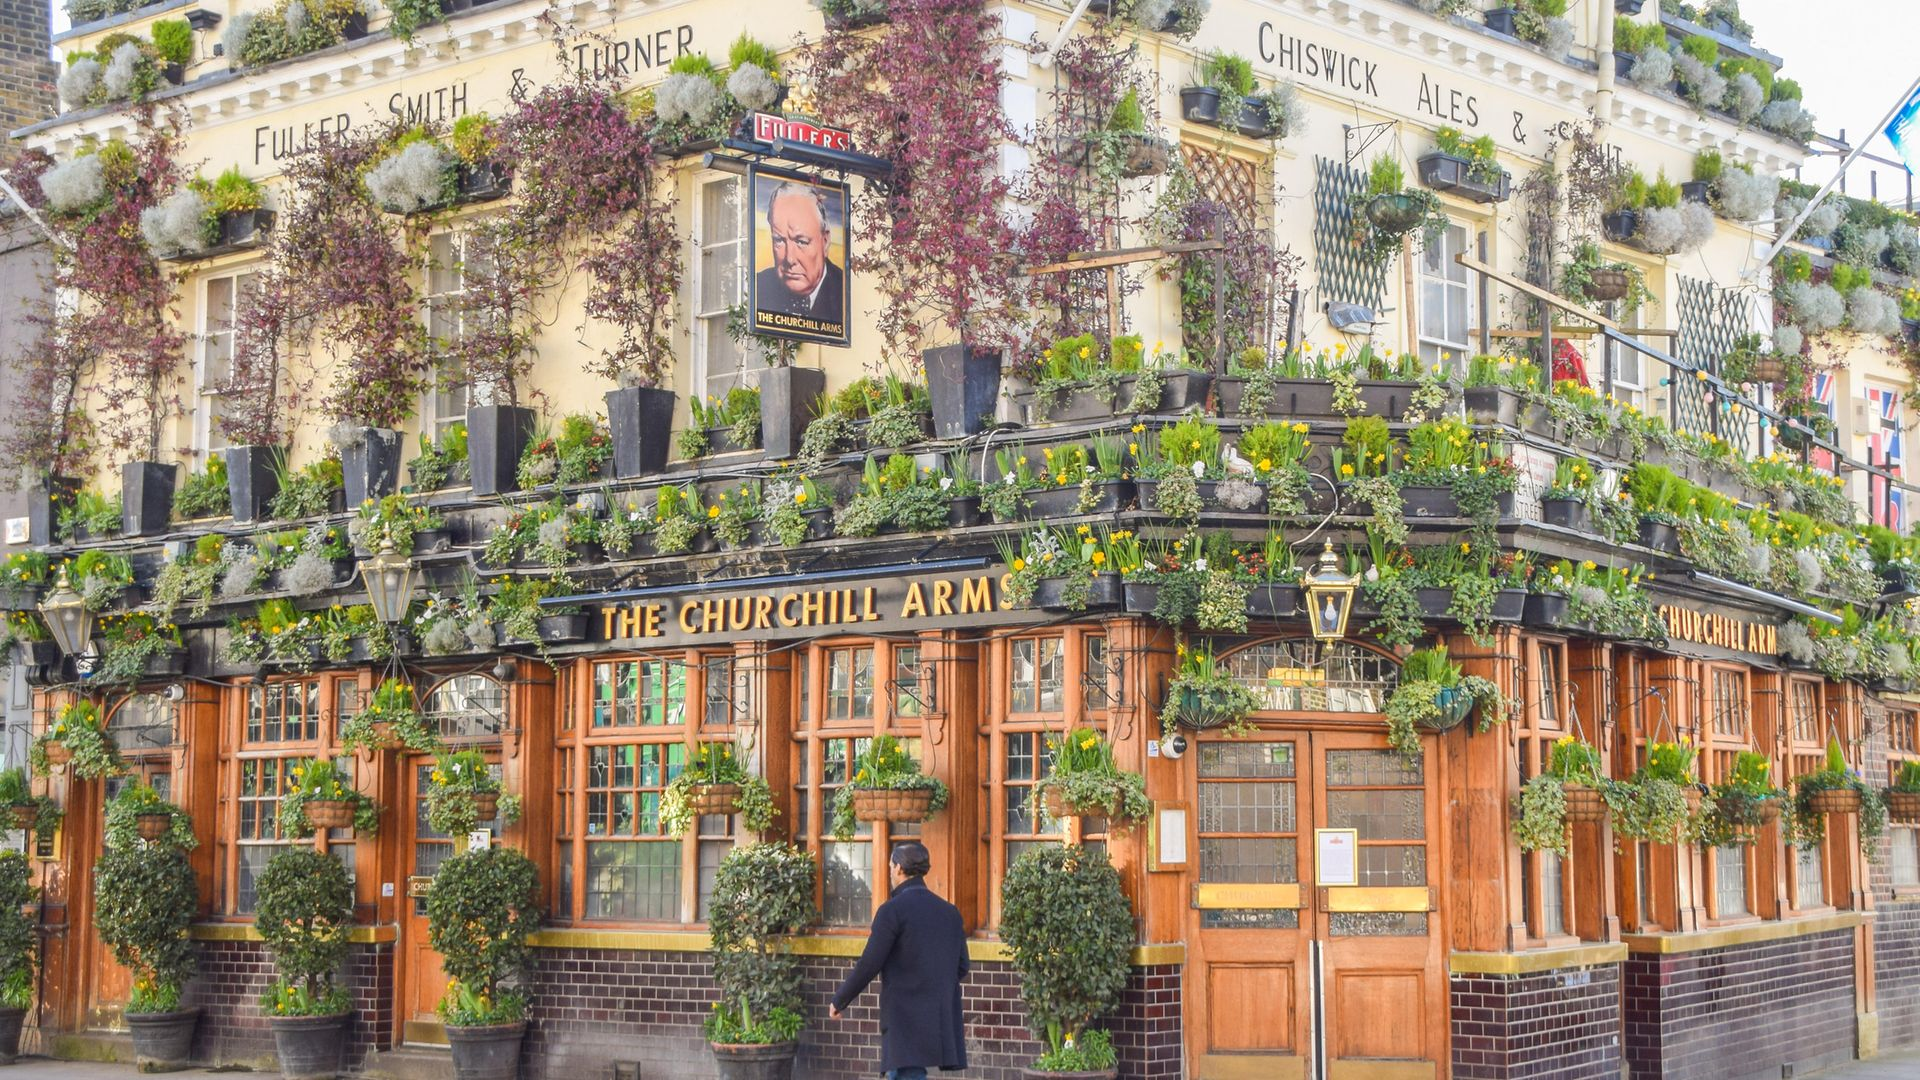 BLOOMING CLOSE: The Churchill Arms, in Kensington, west London, will be able to reopen shortly. - Credit: SOPA Images/LightRocket via Gett